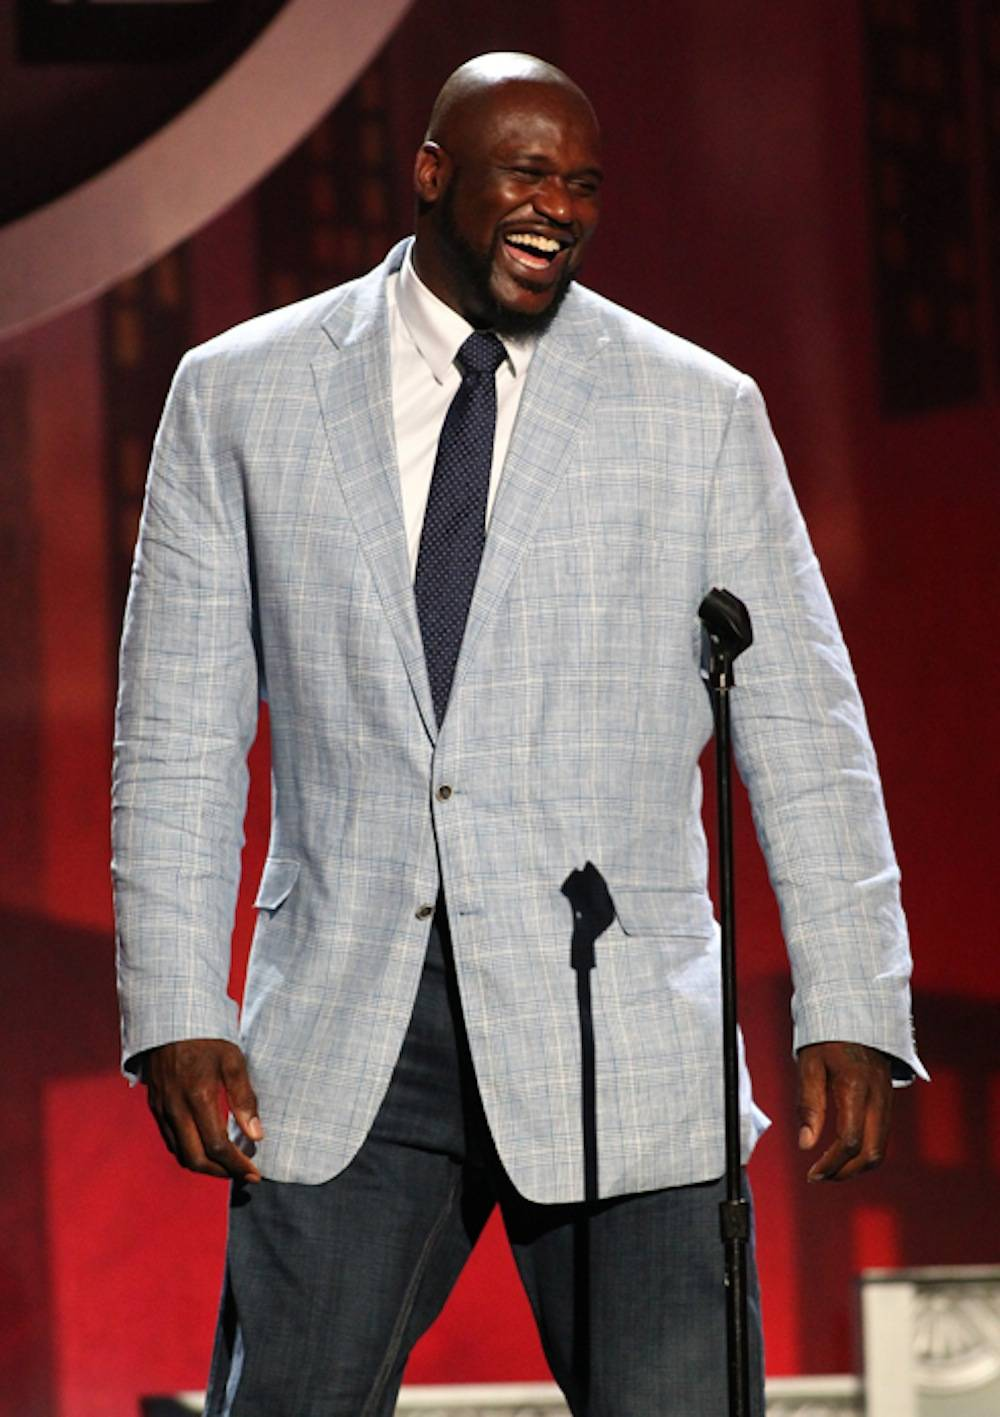 Shaquille O'Neal All Star Comedy Jam at The Joint. Photos: Chase Stevens/Erik Kabik Photography